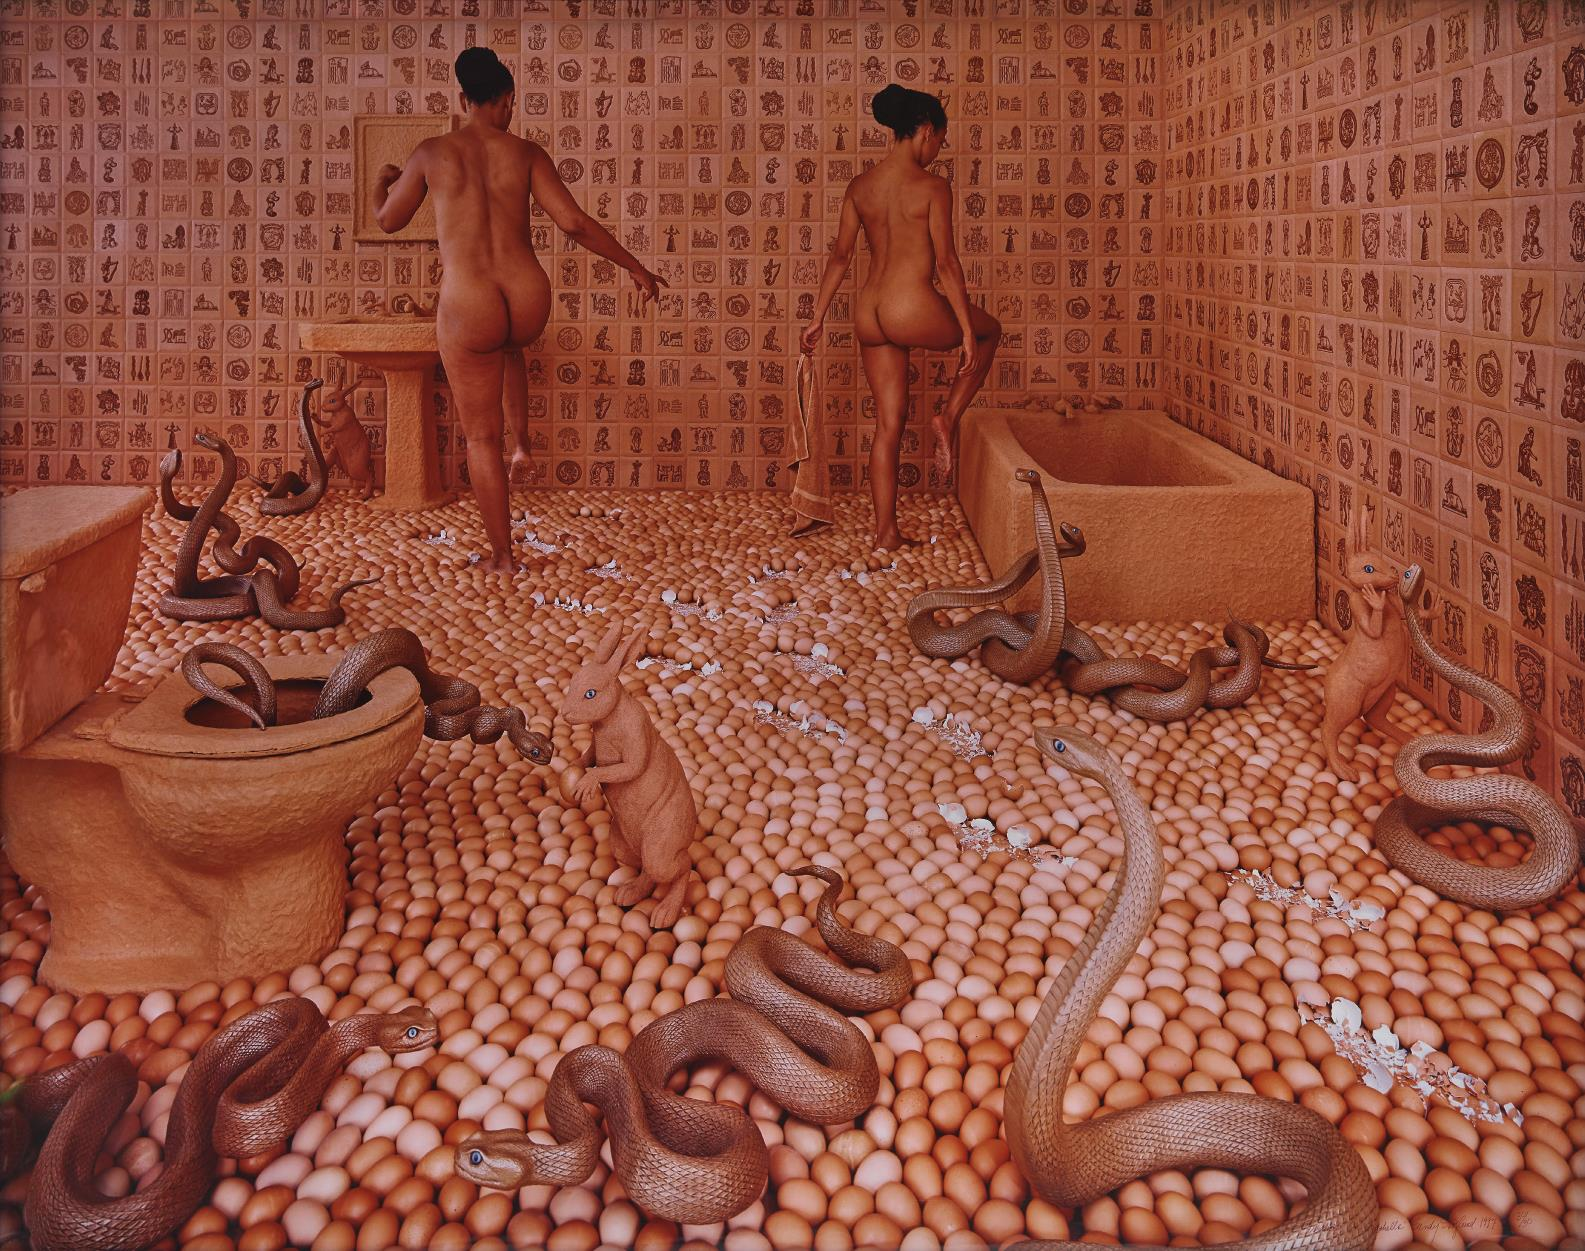 Walking On Eggshells-1997